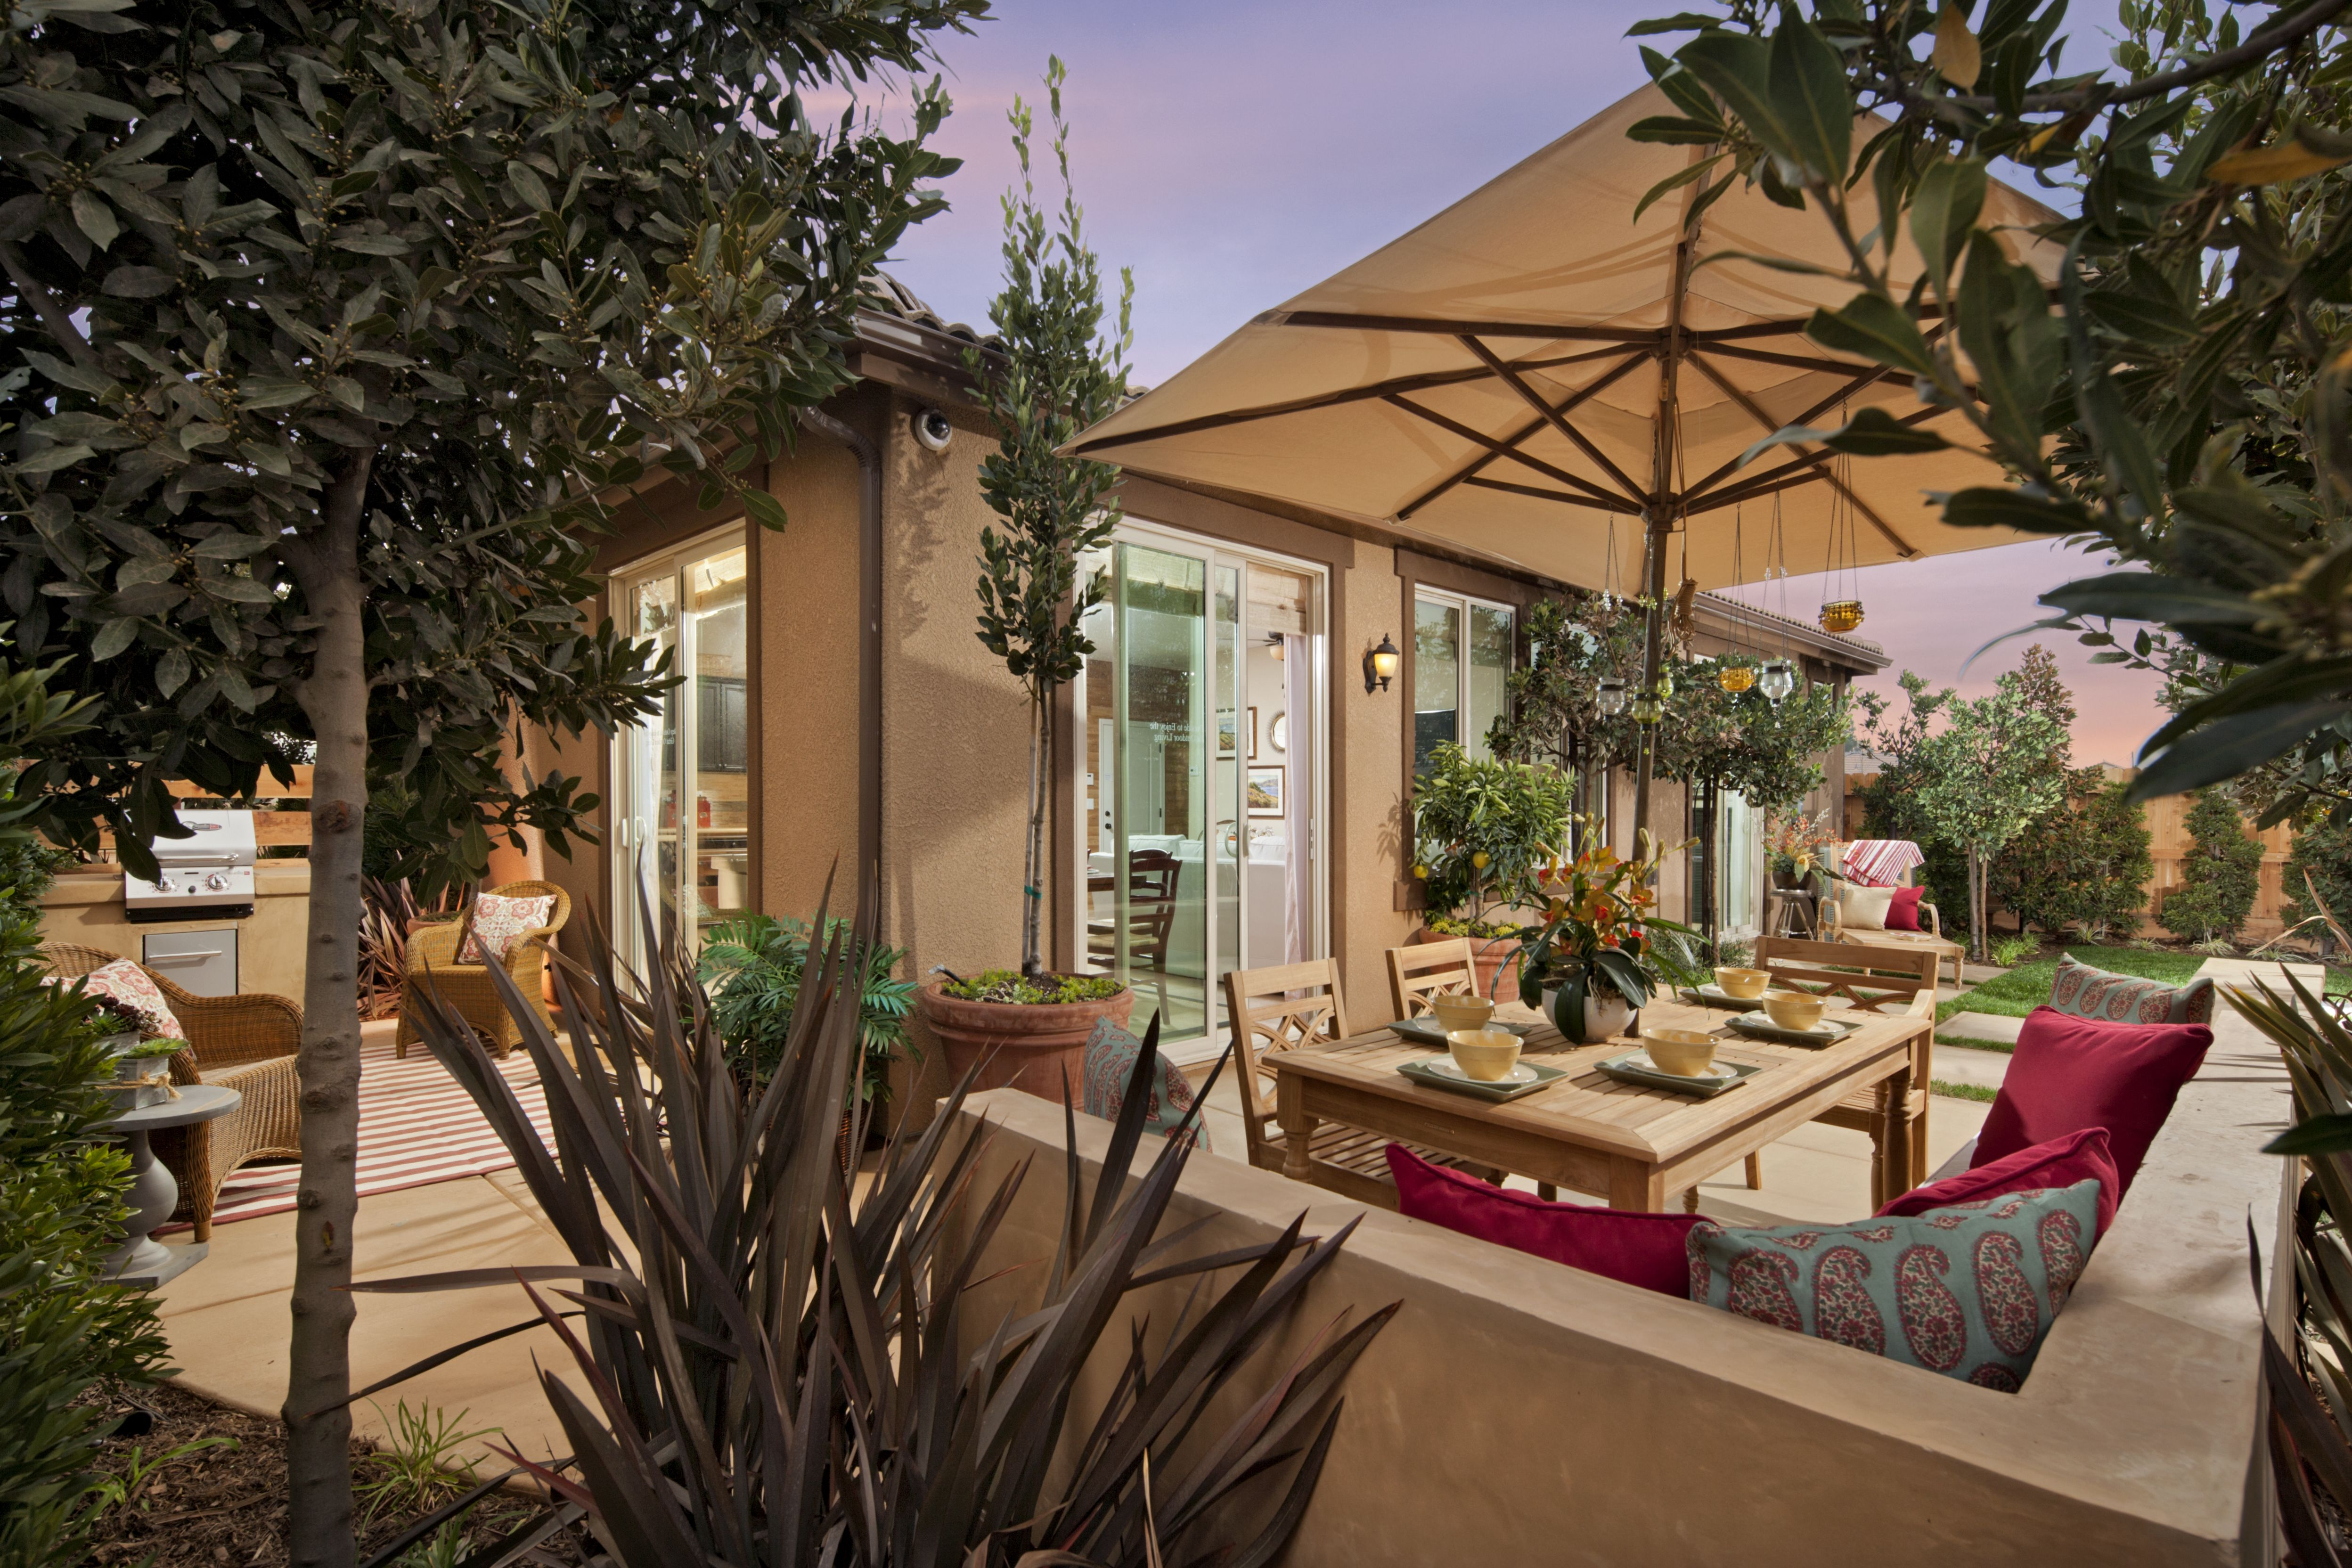 The Outdoor Living Space In The Chelsea Model Is Gorgeous It Is Decorated With Bright Pops Of Pink And Outdoor Living Space Outdoor Living New Homes For Sale